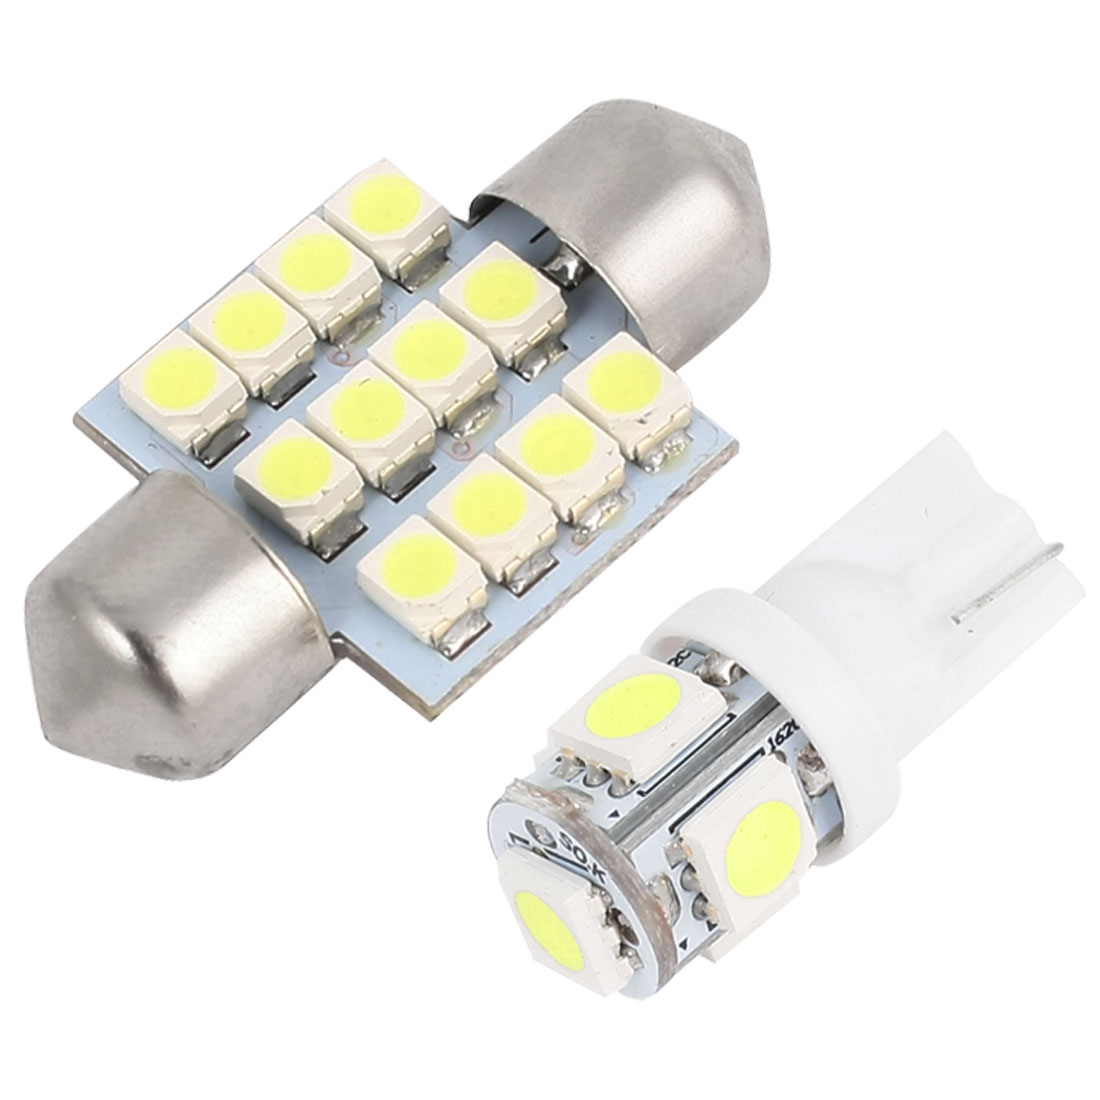 12x Interior Package Kit White Map Dome LED Light Lamp Festoon 31mm for 2003-2008 Infiniti G35